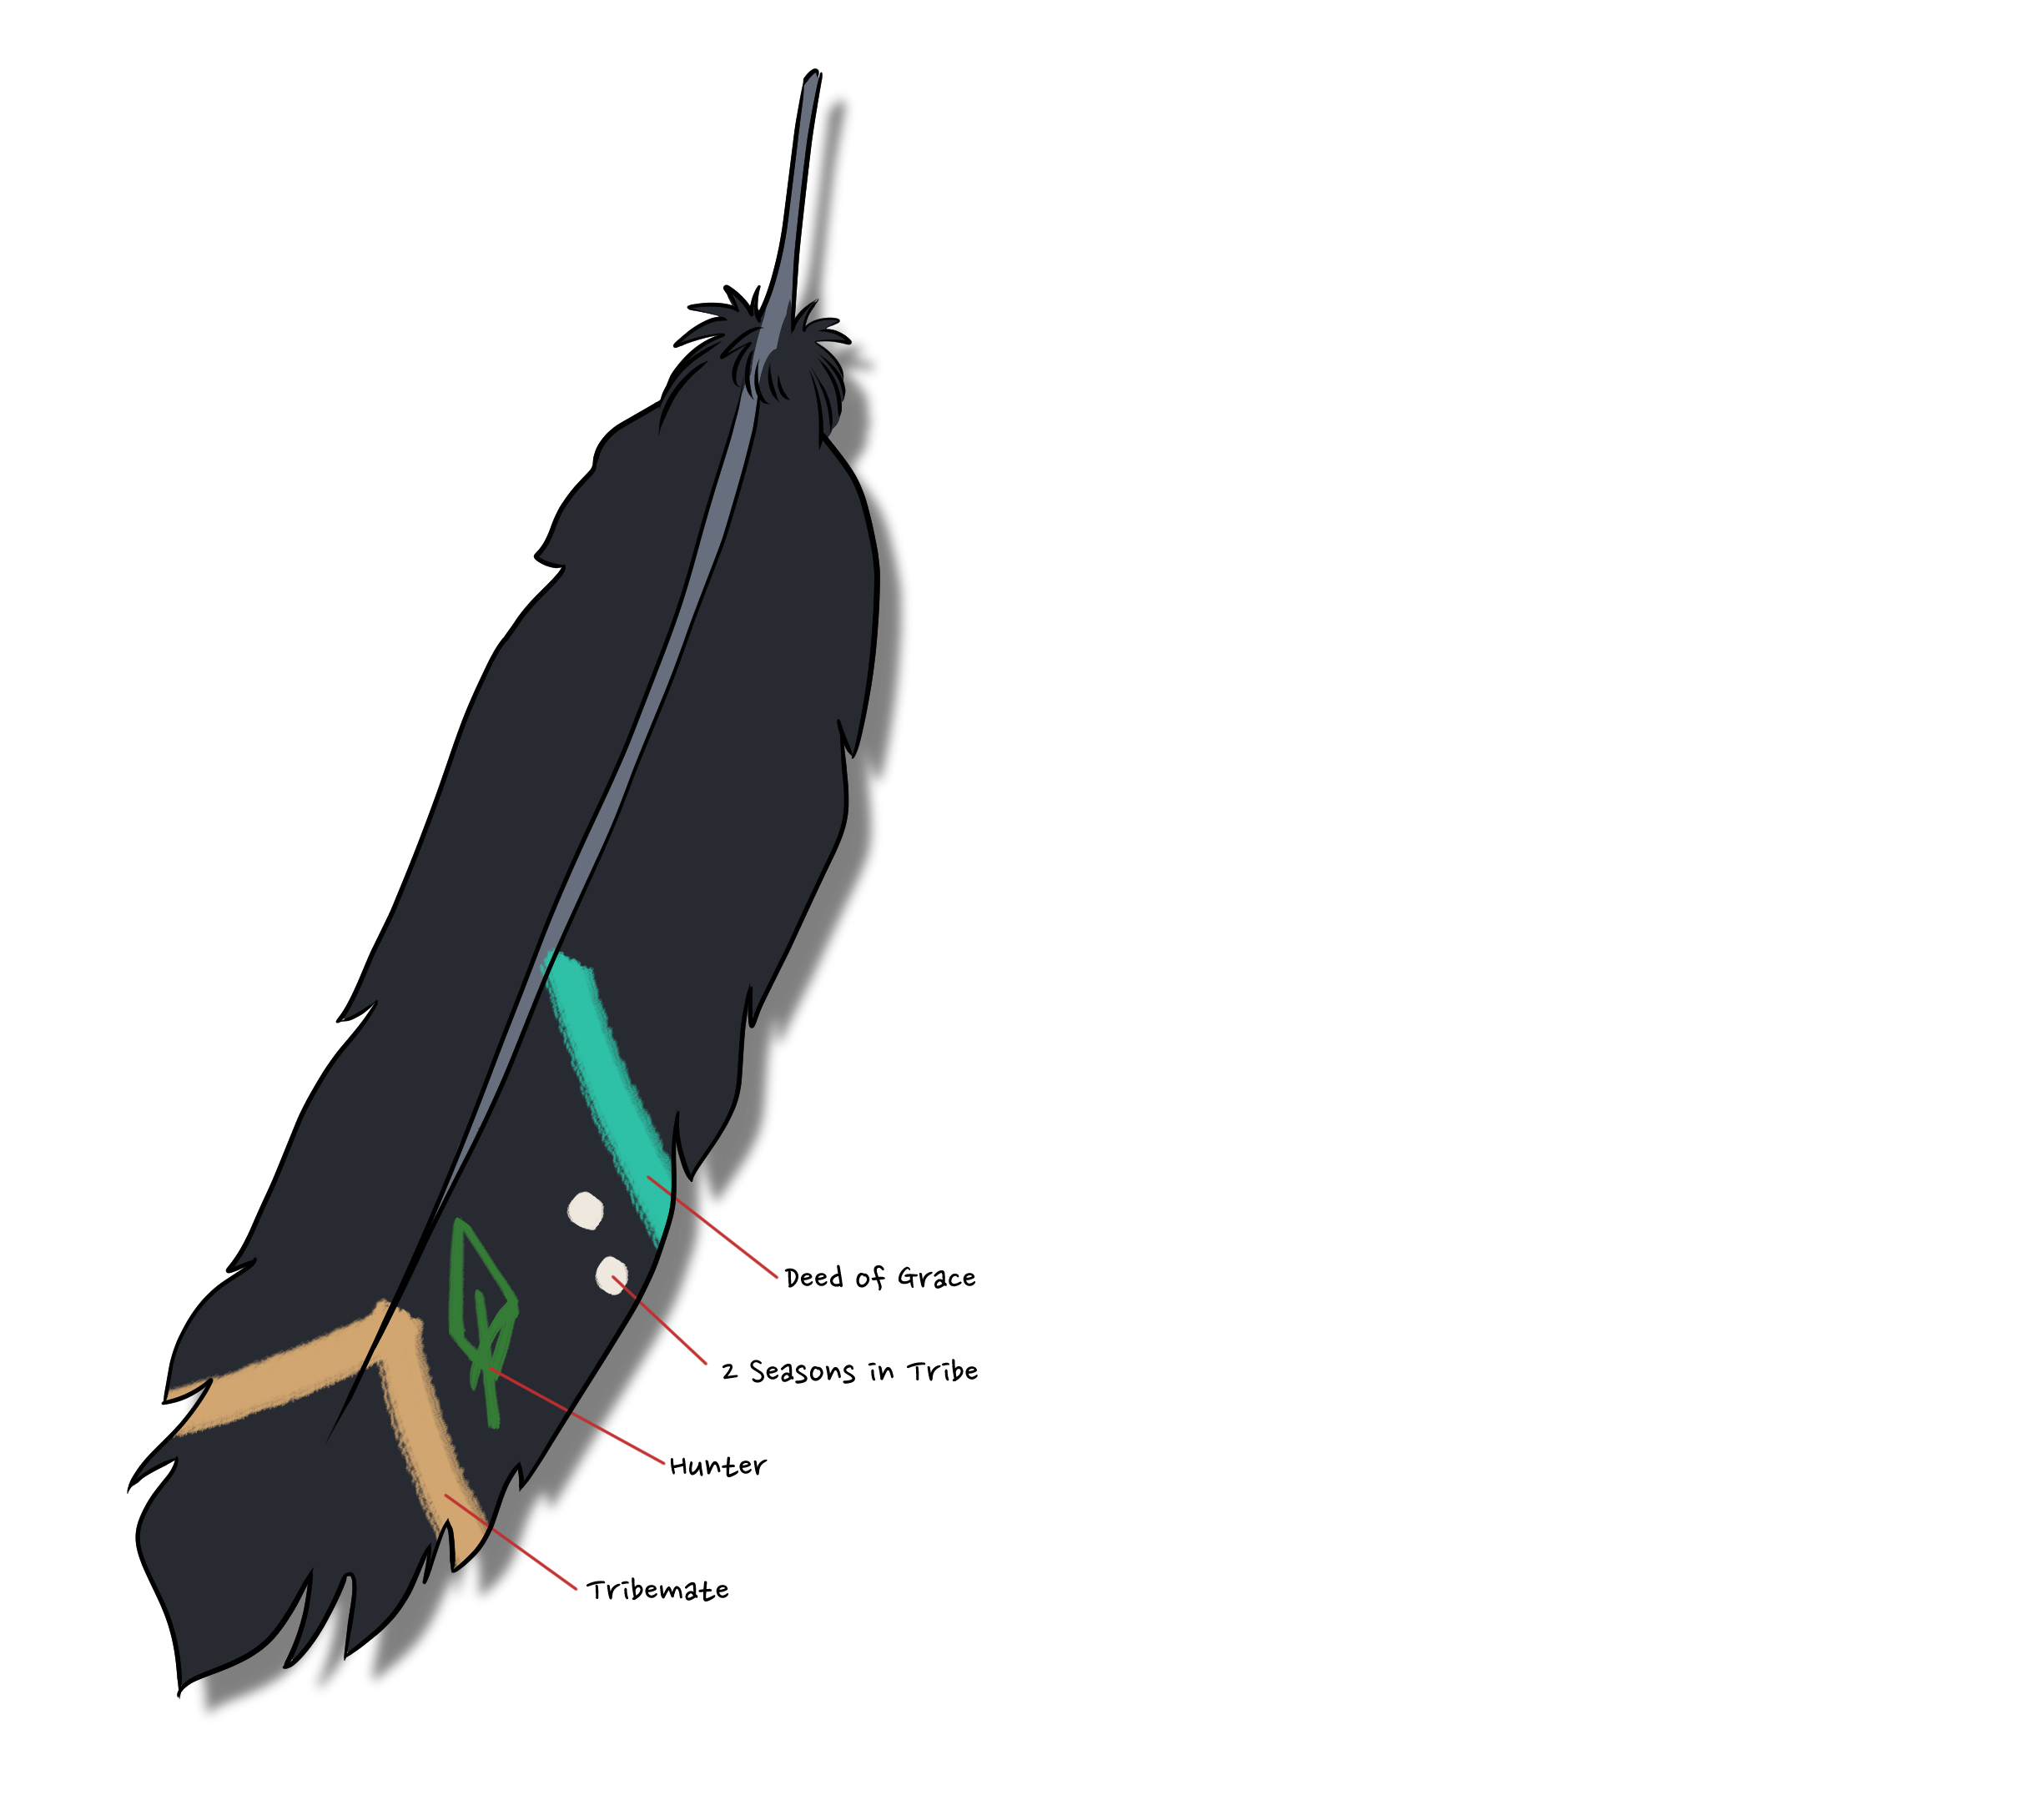 Tribal feather png. Feathers and progression the